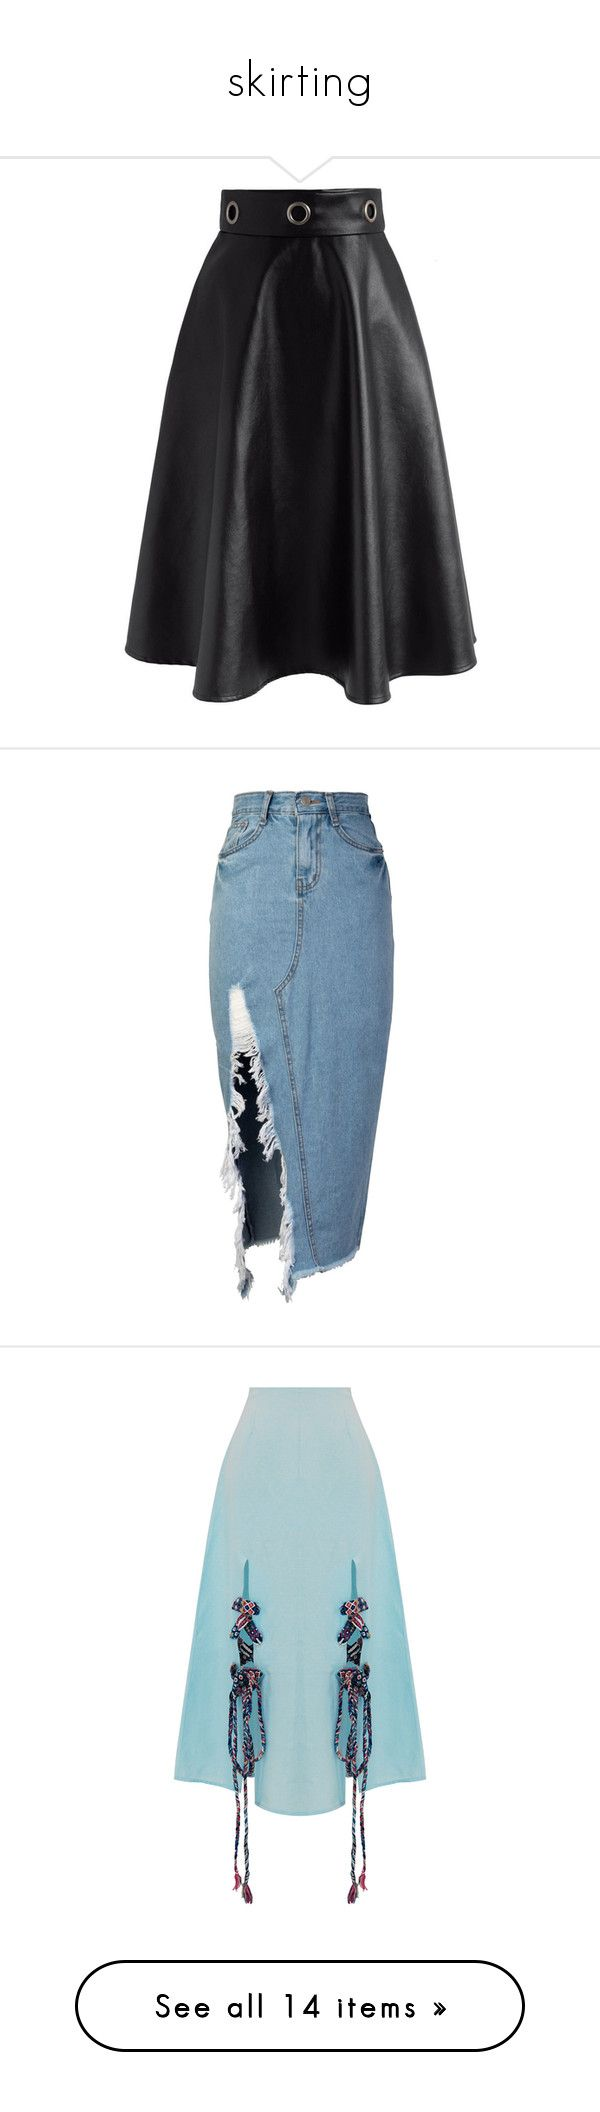 """""""skirting"""" by rstudg ❤ liked on Polyvore featuring skirts, black, a line slip, faux leather a line skirt, chicwish skirt, fake leather skirt, vegan leather skirt, bottoms, denim skirt and knee length denim skirt"""